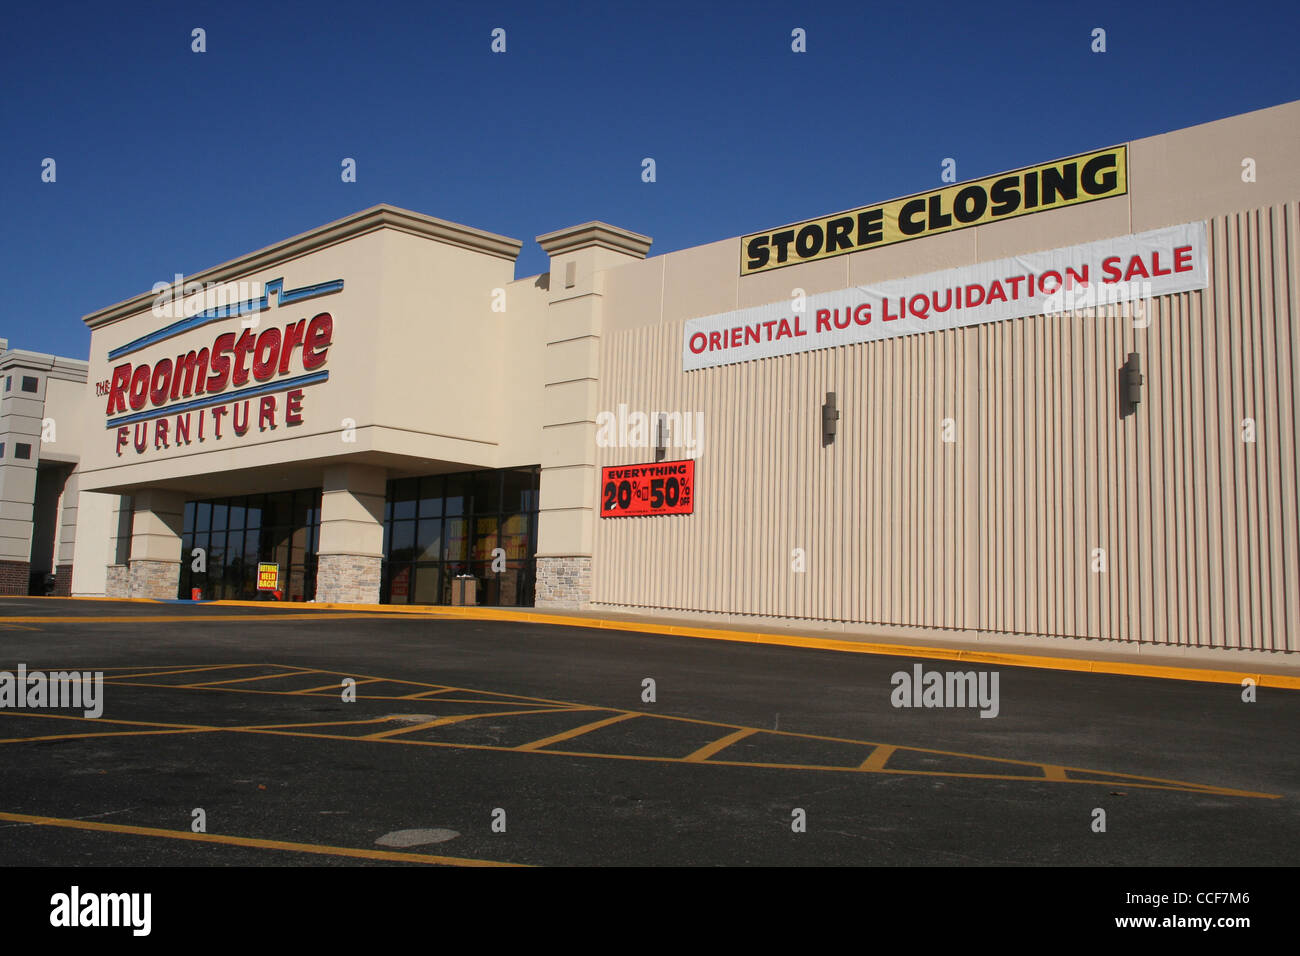 Store Closing Sale Stock Photos Store Closing Sale Stock Images